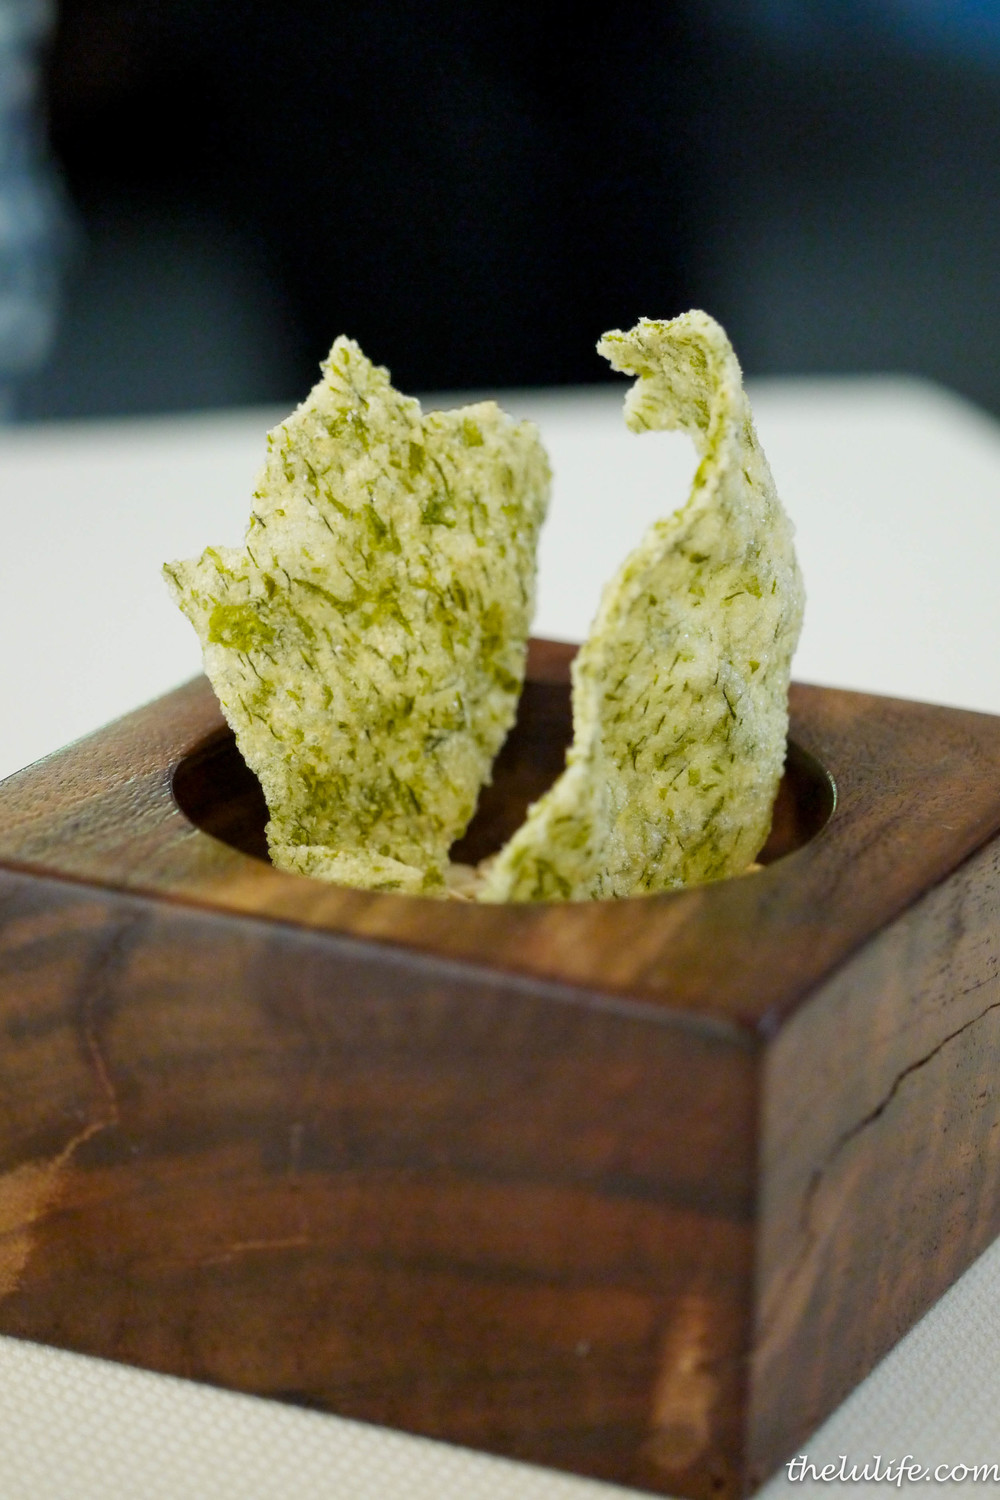 Course #2: Sea lettuce chip to dip into the cooled green tomato mix Loved the texture contrasts!